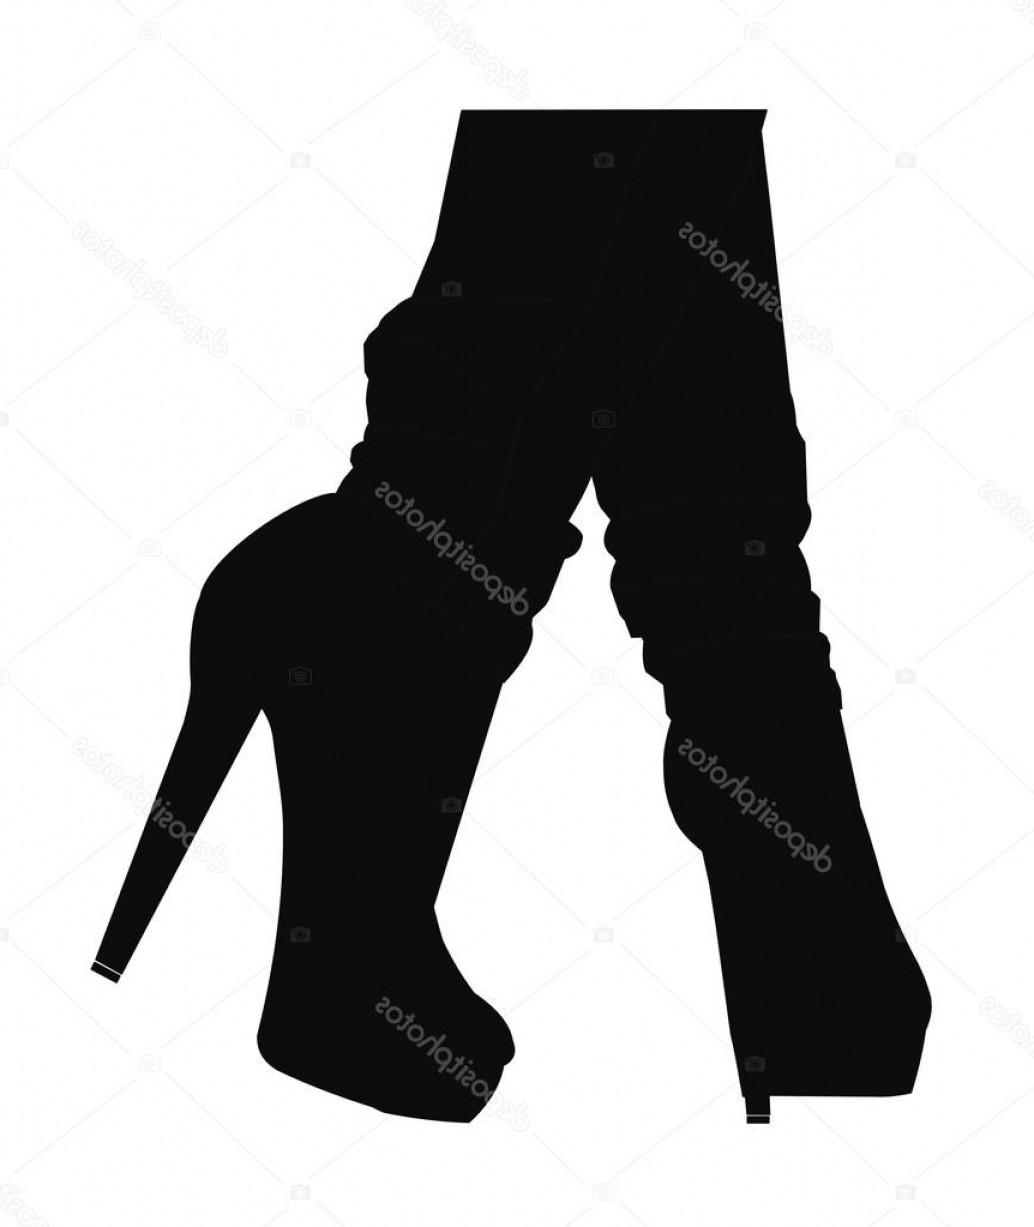 Silhouette Hee High Vector Lsitleetios: Stock Illustration Woman In Jeans And Heels